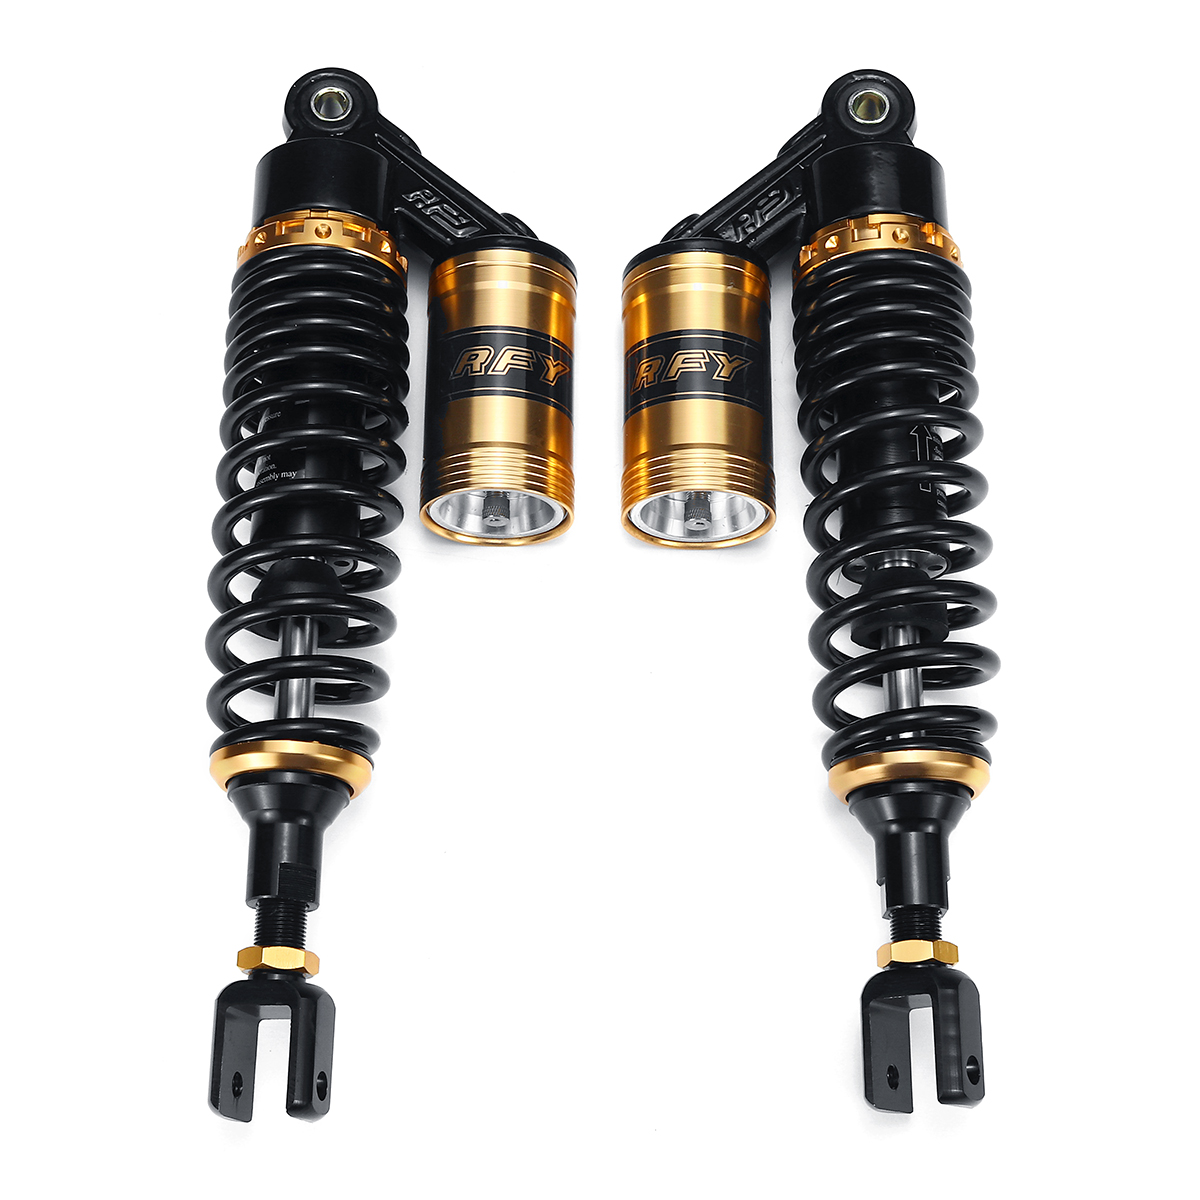 14inch 360mm Motorcycle Rear Air Shock Absorber Suspension 150cc-750cc For Honda/Yamaha/Suzuki Scooter Quad Street Bikes Karting